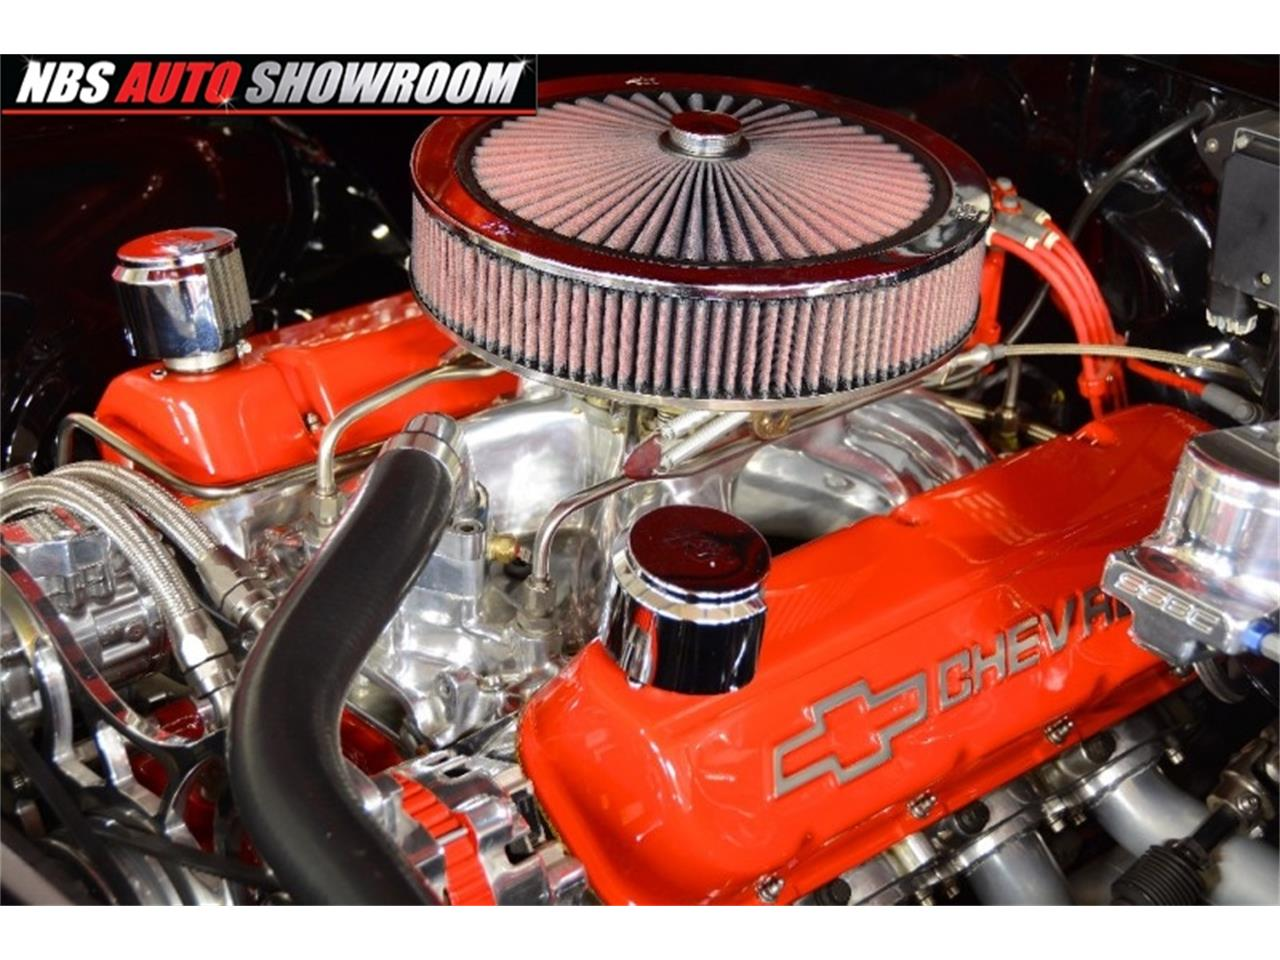 Large Picture of 1972 Chevrolet Chevelle located in California - $70,067.00 Offered by NBS Auto Showroom - KCKI